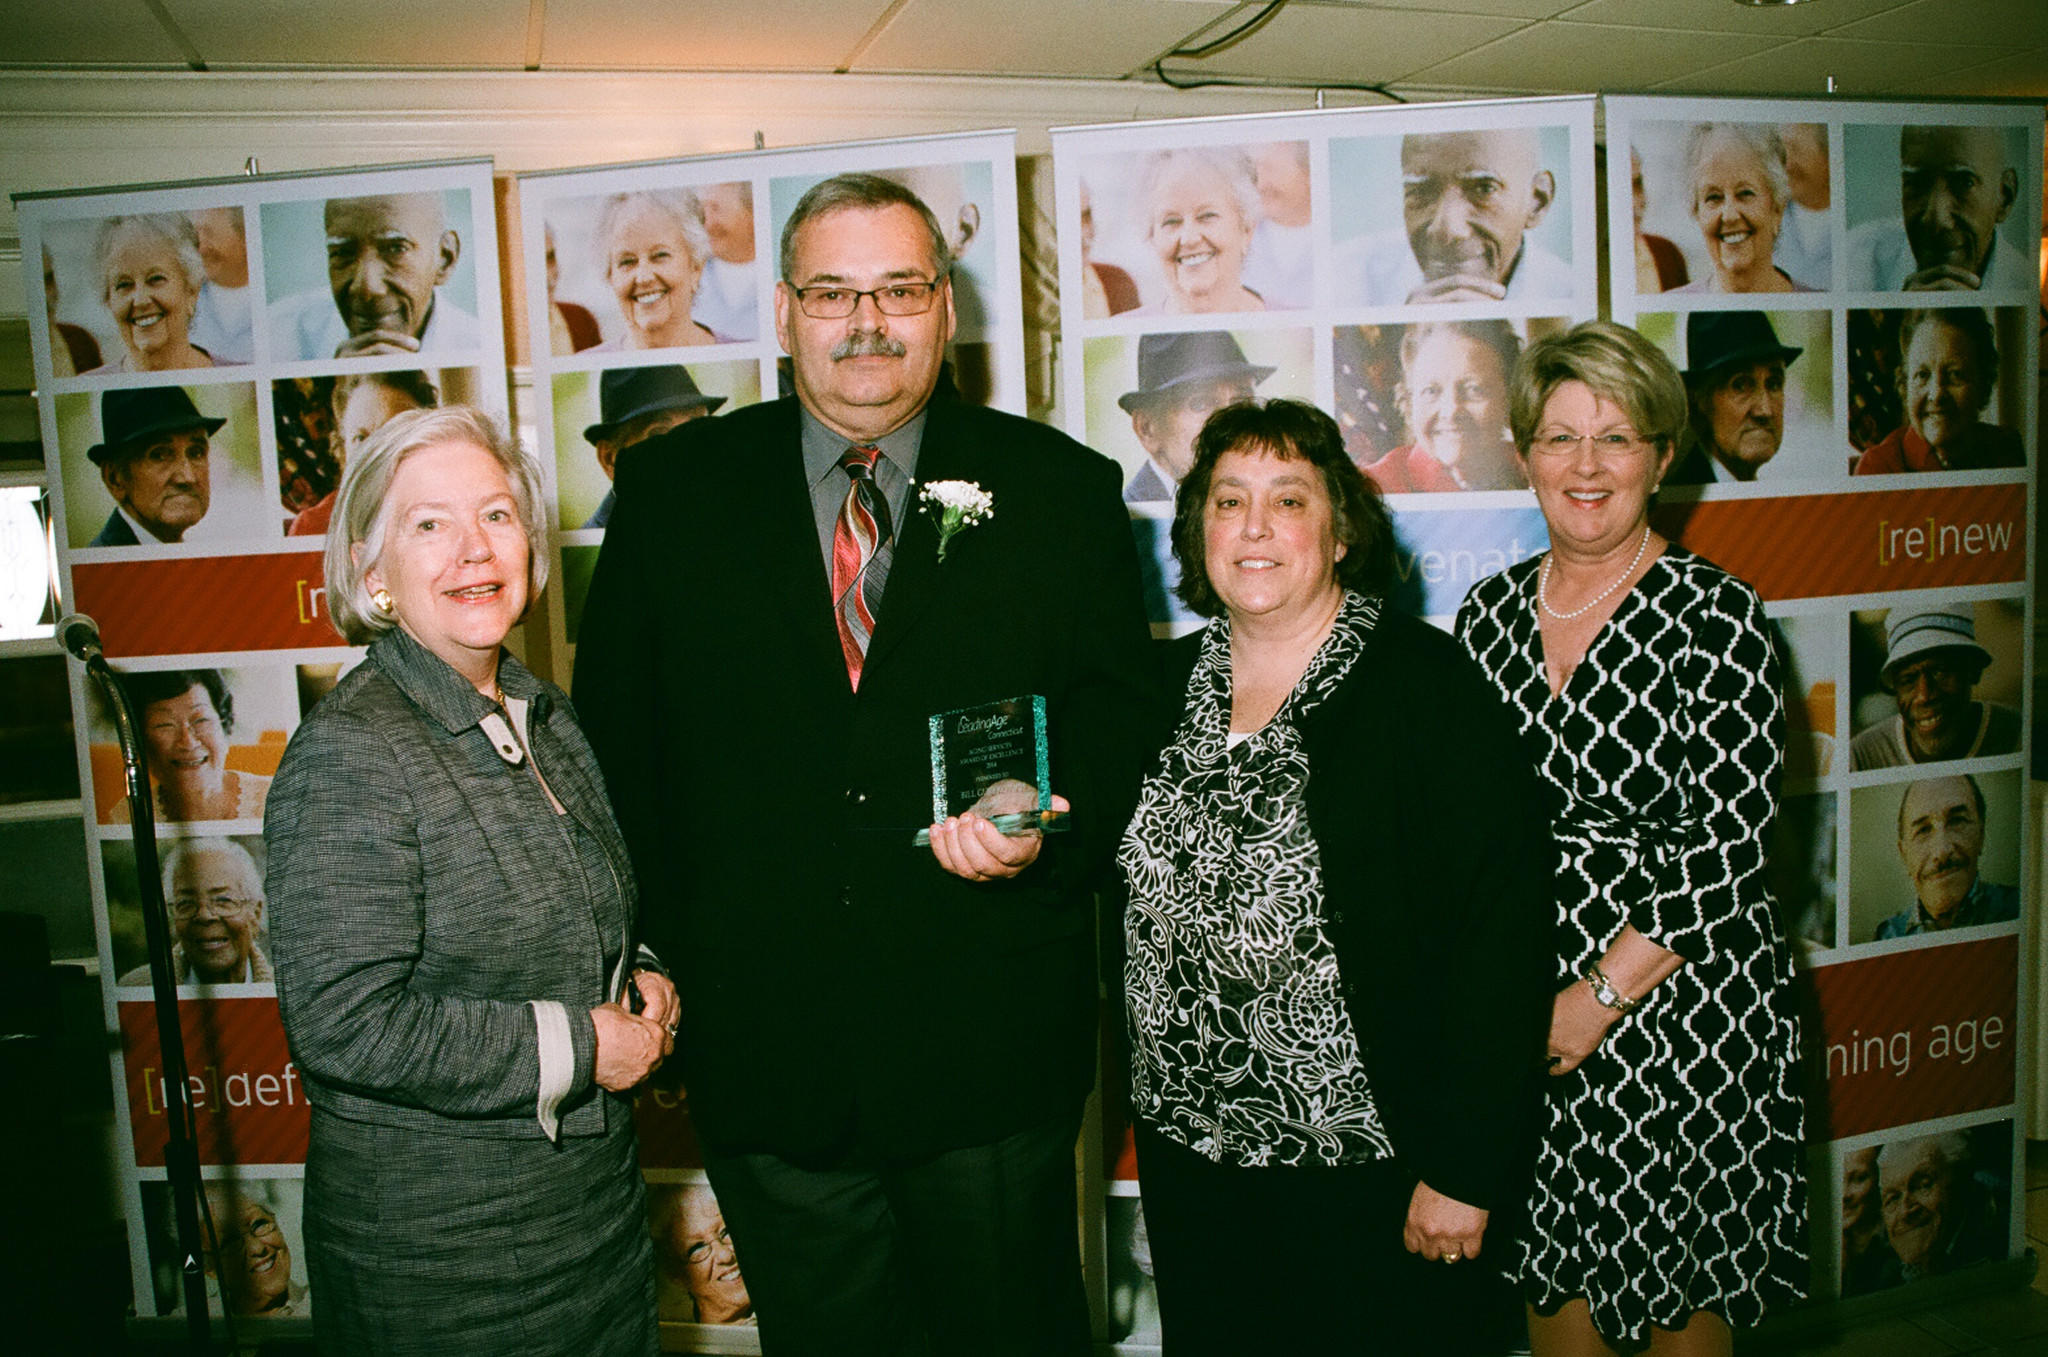 Left to right: Molly Savard, executive director, The Bradley Home and LeadingAge CT's Awards Committee chairwoman; Bill Gurekovich; Robyn Beaulieu, Jefferson House director of nursing; and Patricia Morse, president of Connecticut Baptist Homes and LeadingAge CT chairwoman.